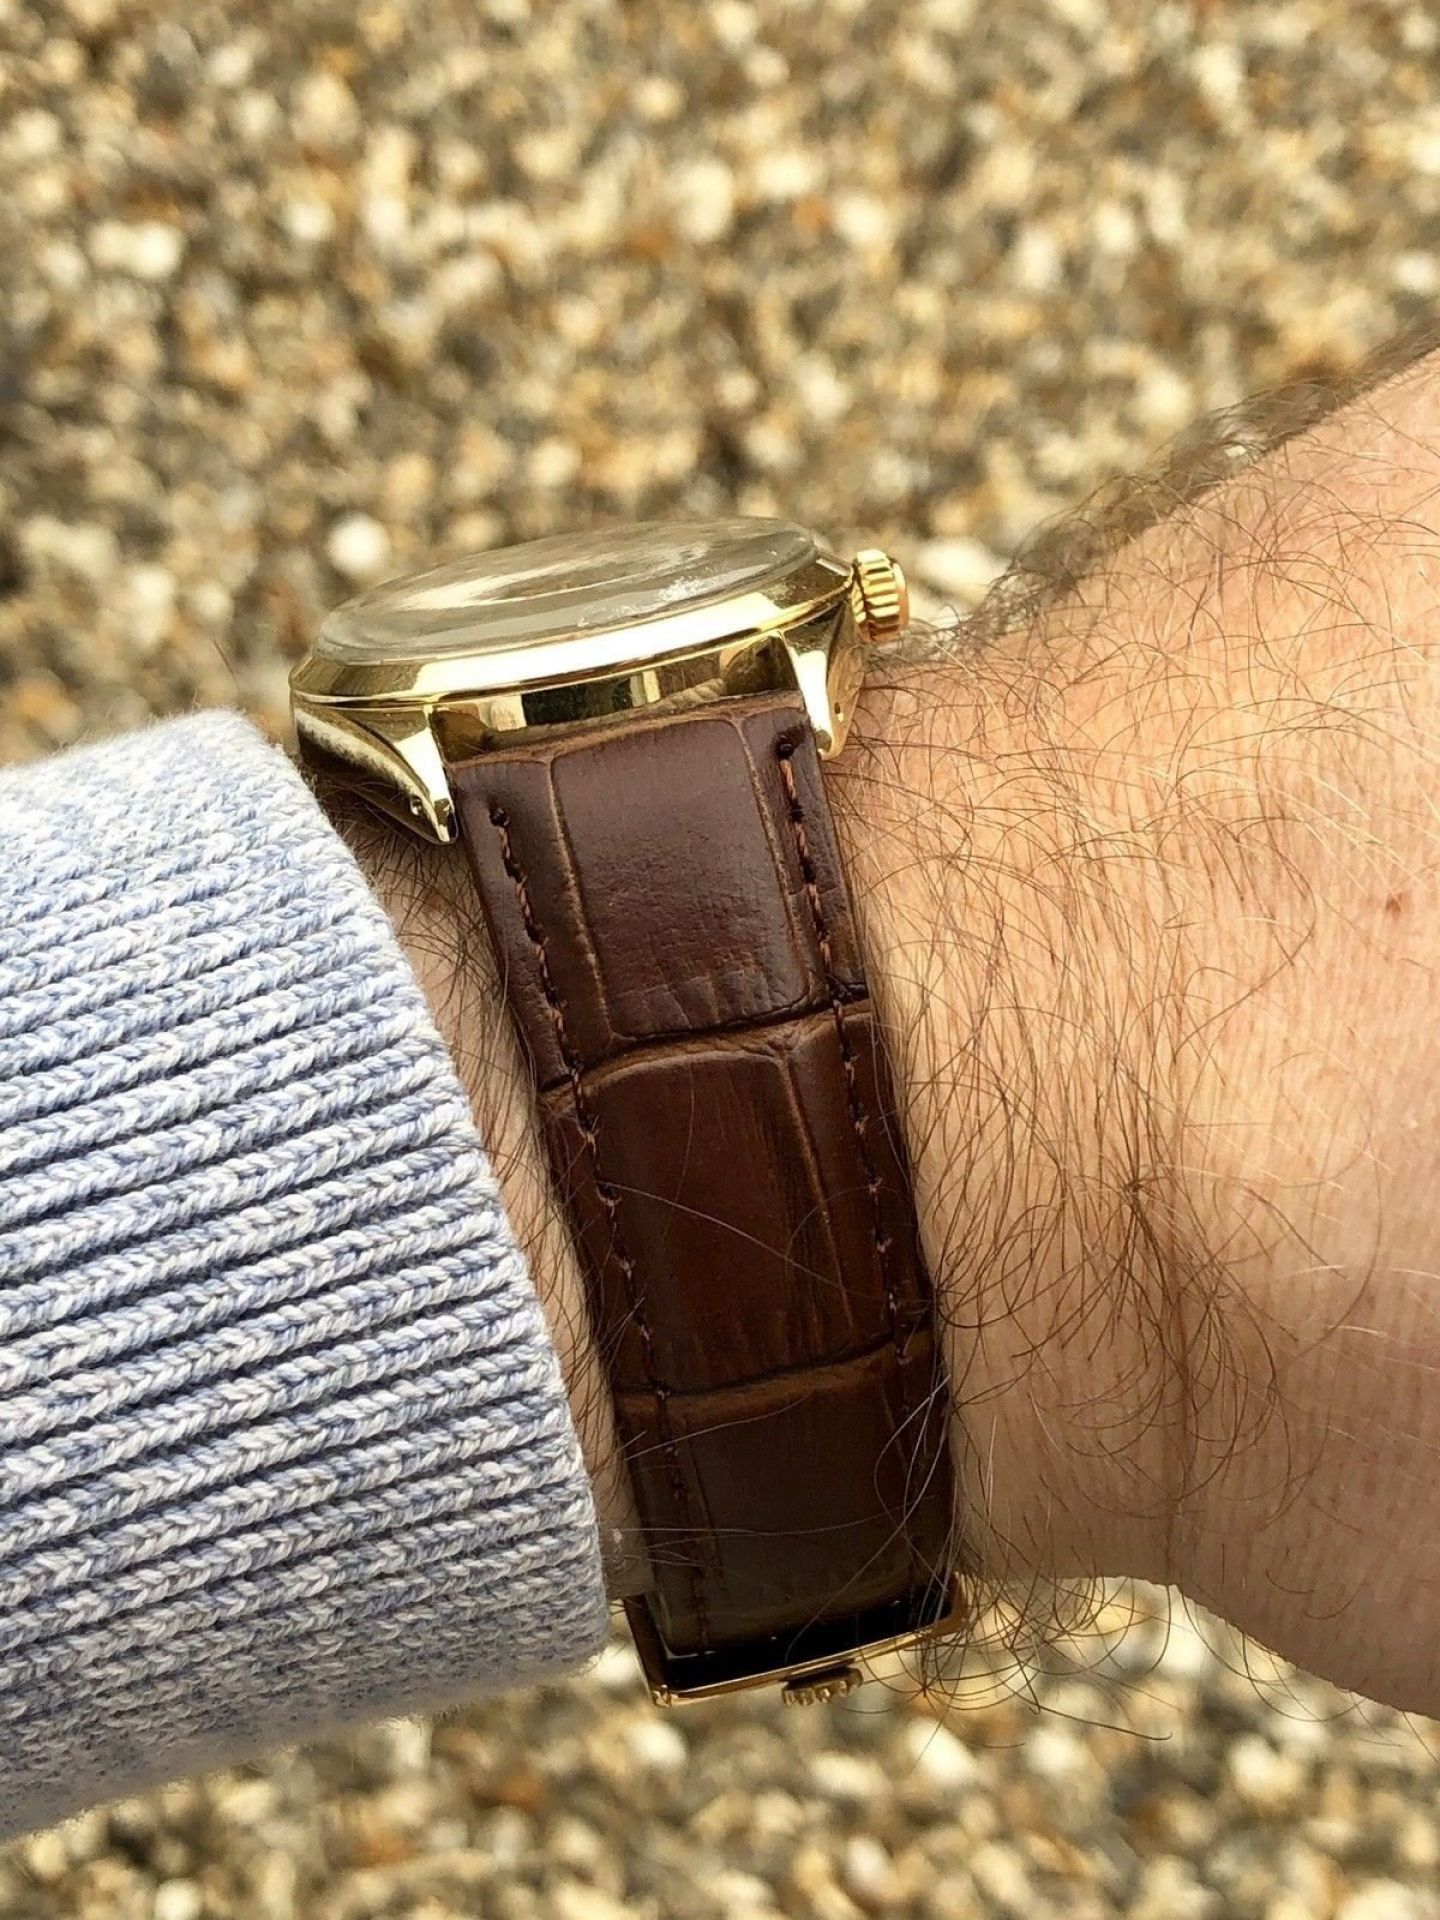 GENUINE ROLEX AIR KING 5520 OYSTER GOLD PERPETUAL AUTOMATIC VINTAGE 1978-1979